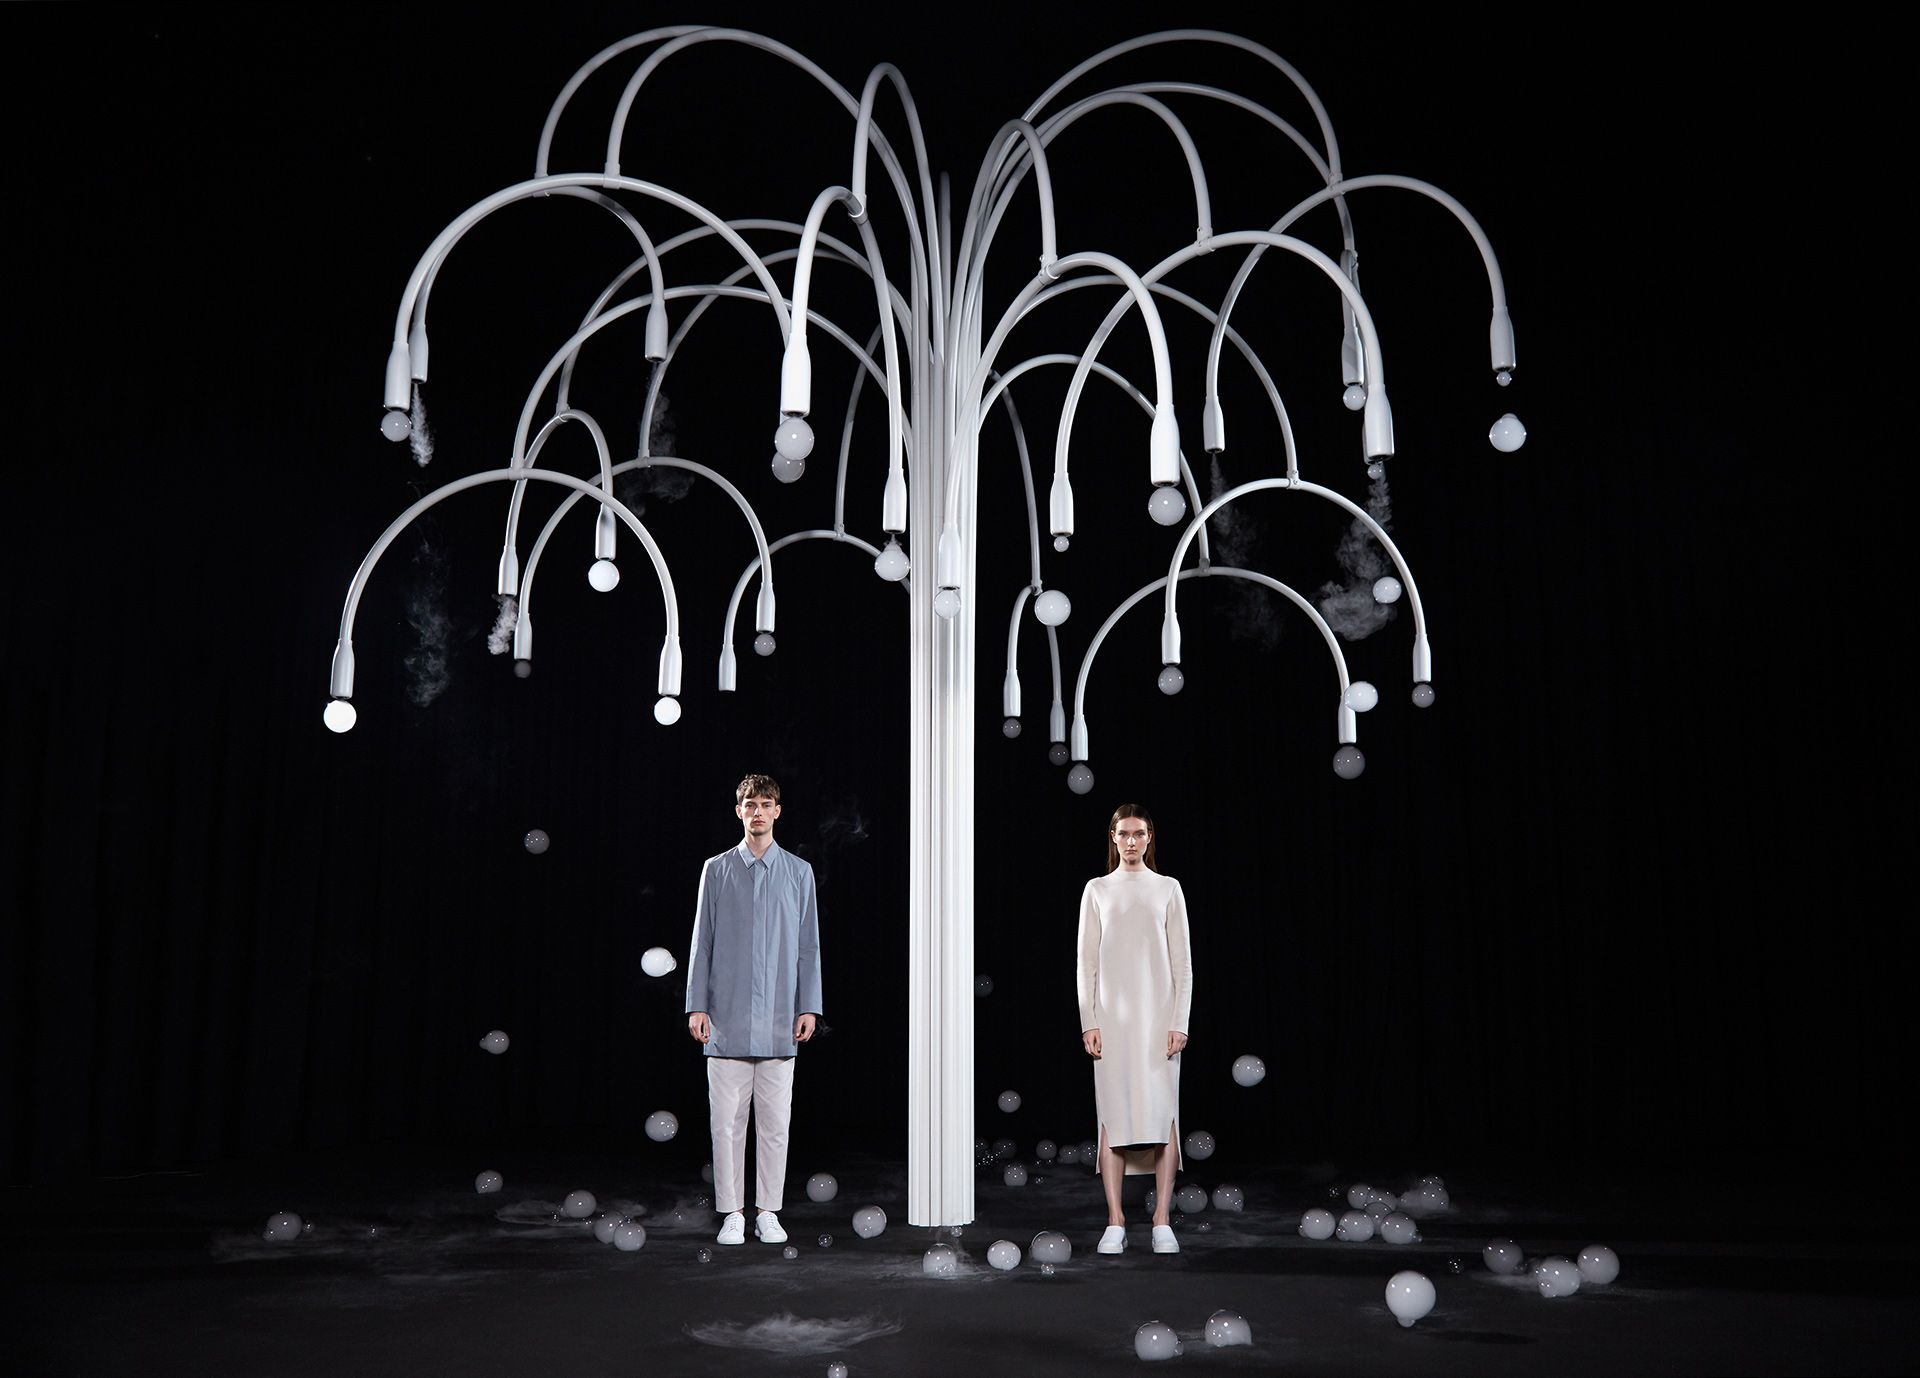 A modernist metal tree stands in a darkened cinema. The New Spring installation plays with the impermanence and the resilience of nature, life, and technology.